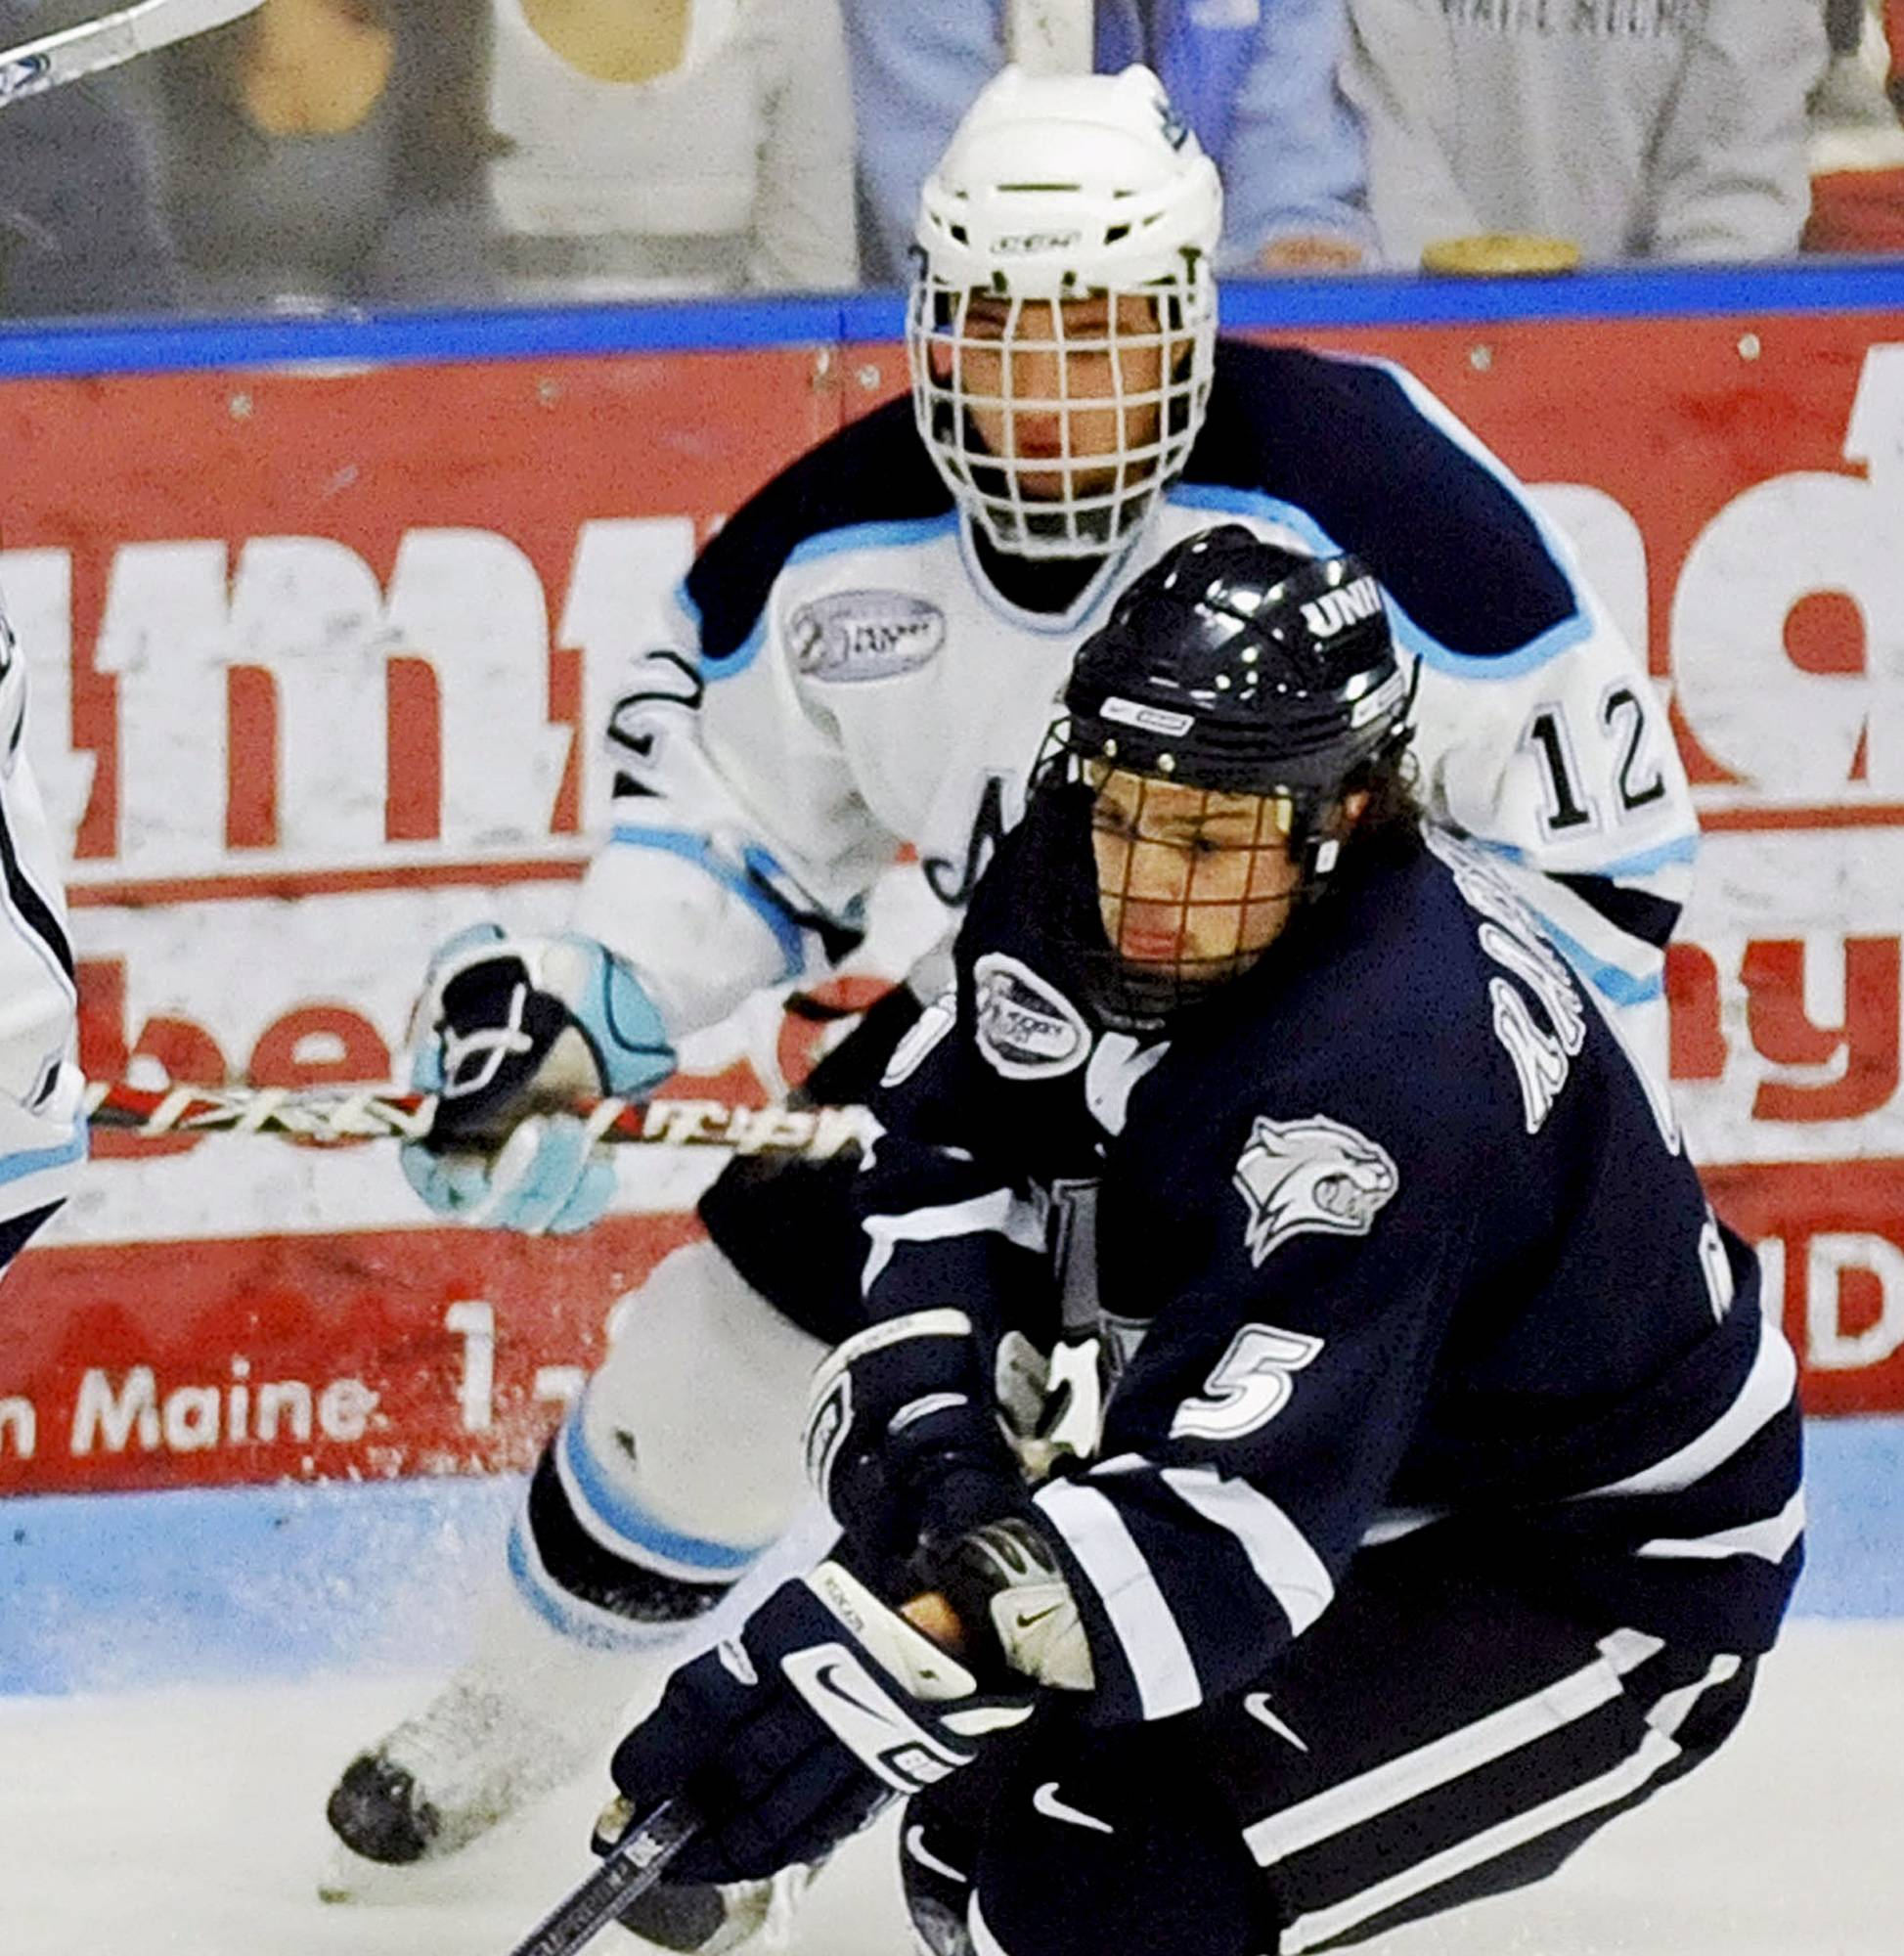 Kyle Solomon (12) suffered multiple concussions as a forward for Maine's ice hockey team from 2008 to 2010. One happened during a nationally televised game in 2009, when he was slammed into the boards and blacked out, according to filings. After receiving seven stitches in the locker room, he returned to the game in the final period.